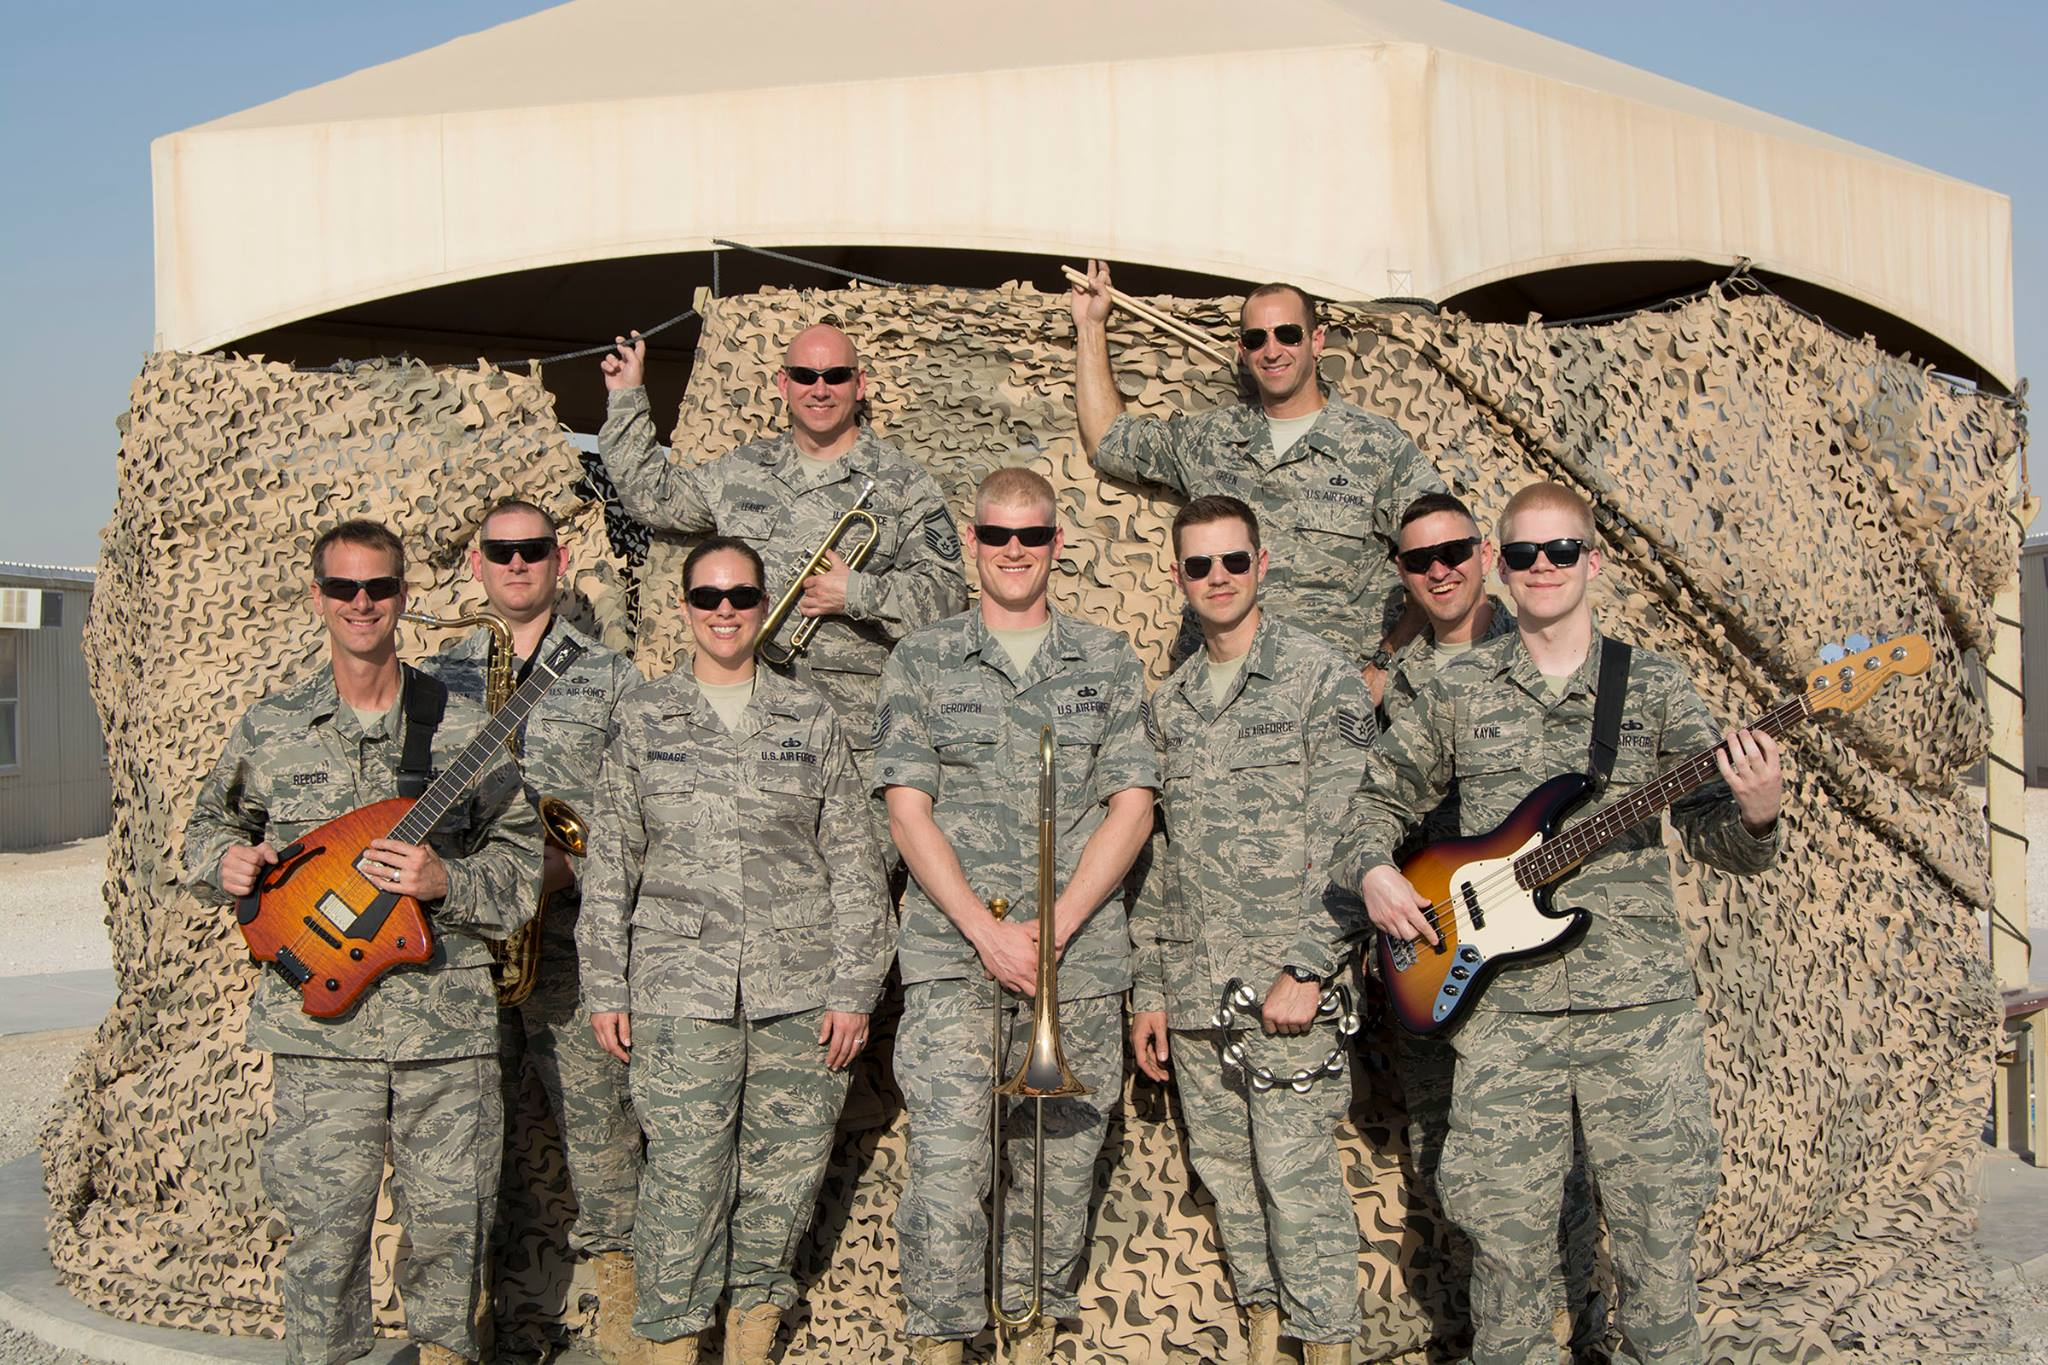 The U S  Air Force Band's deployment group, Nighthawk